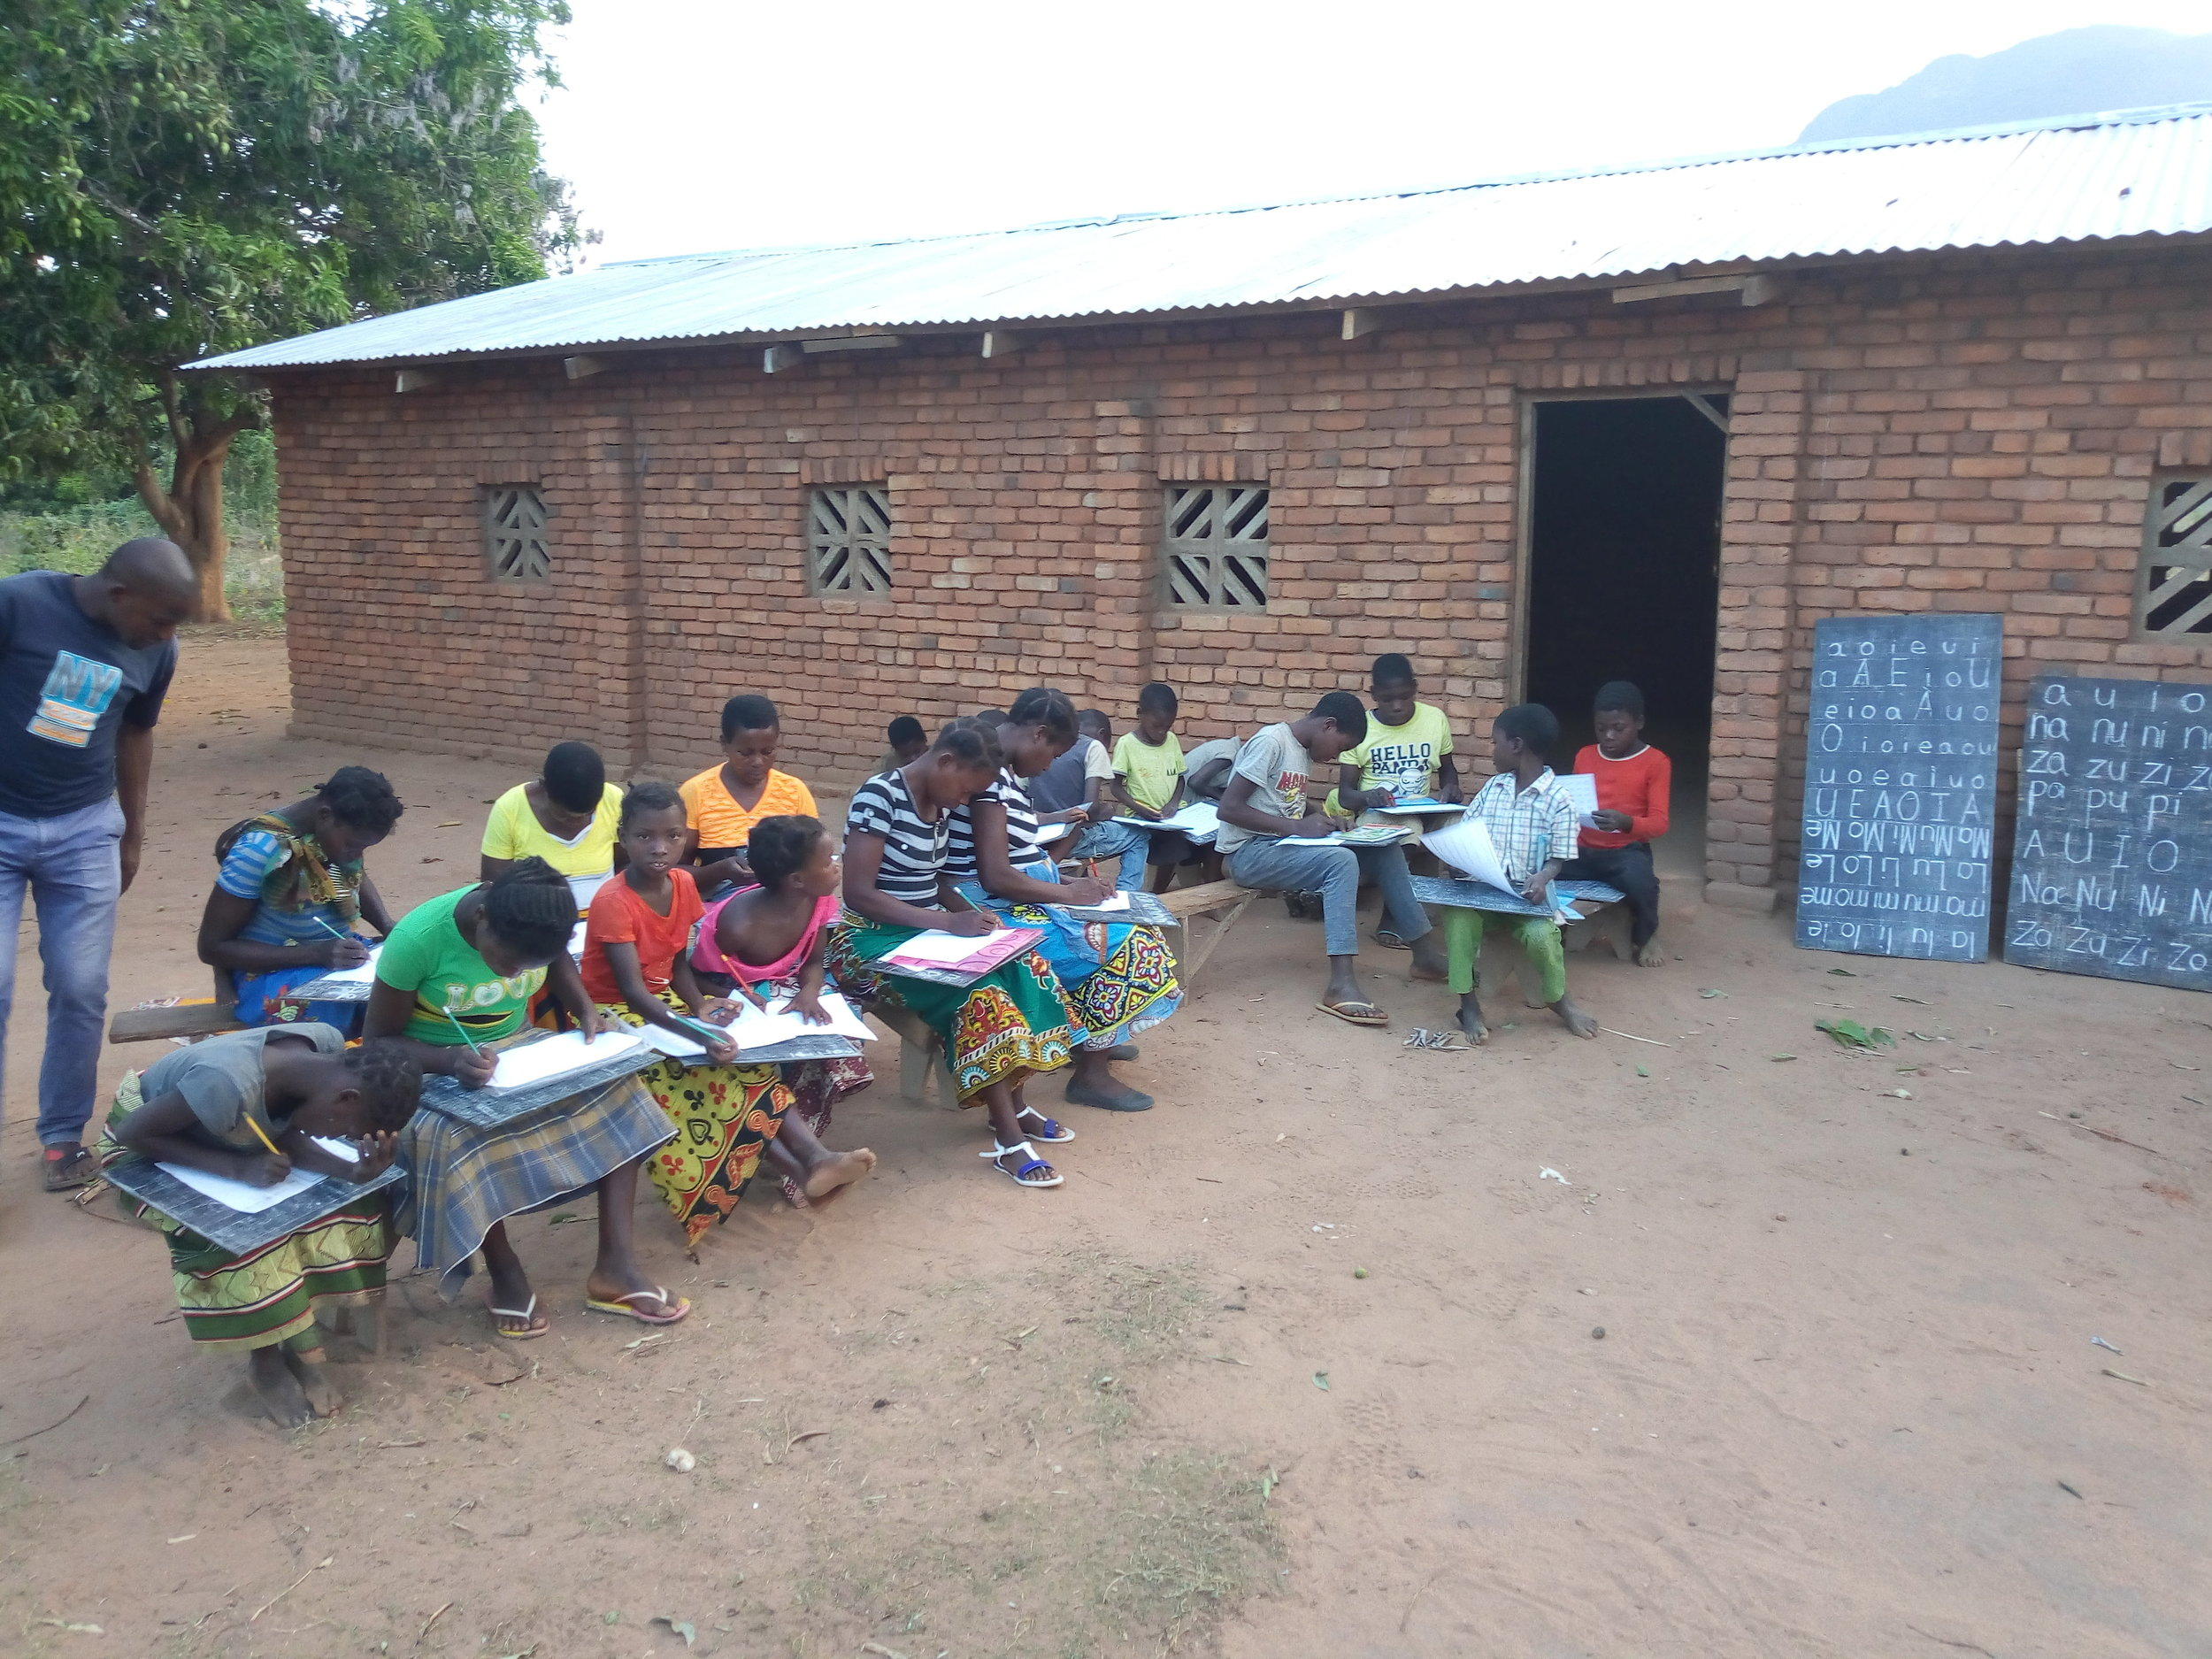 Yolo youths having an outdoor literacy lesson